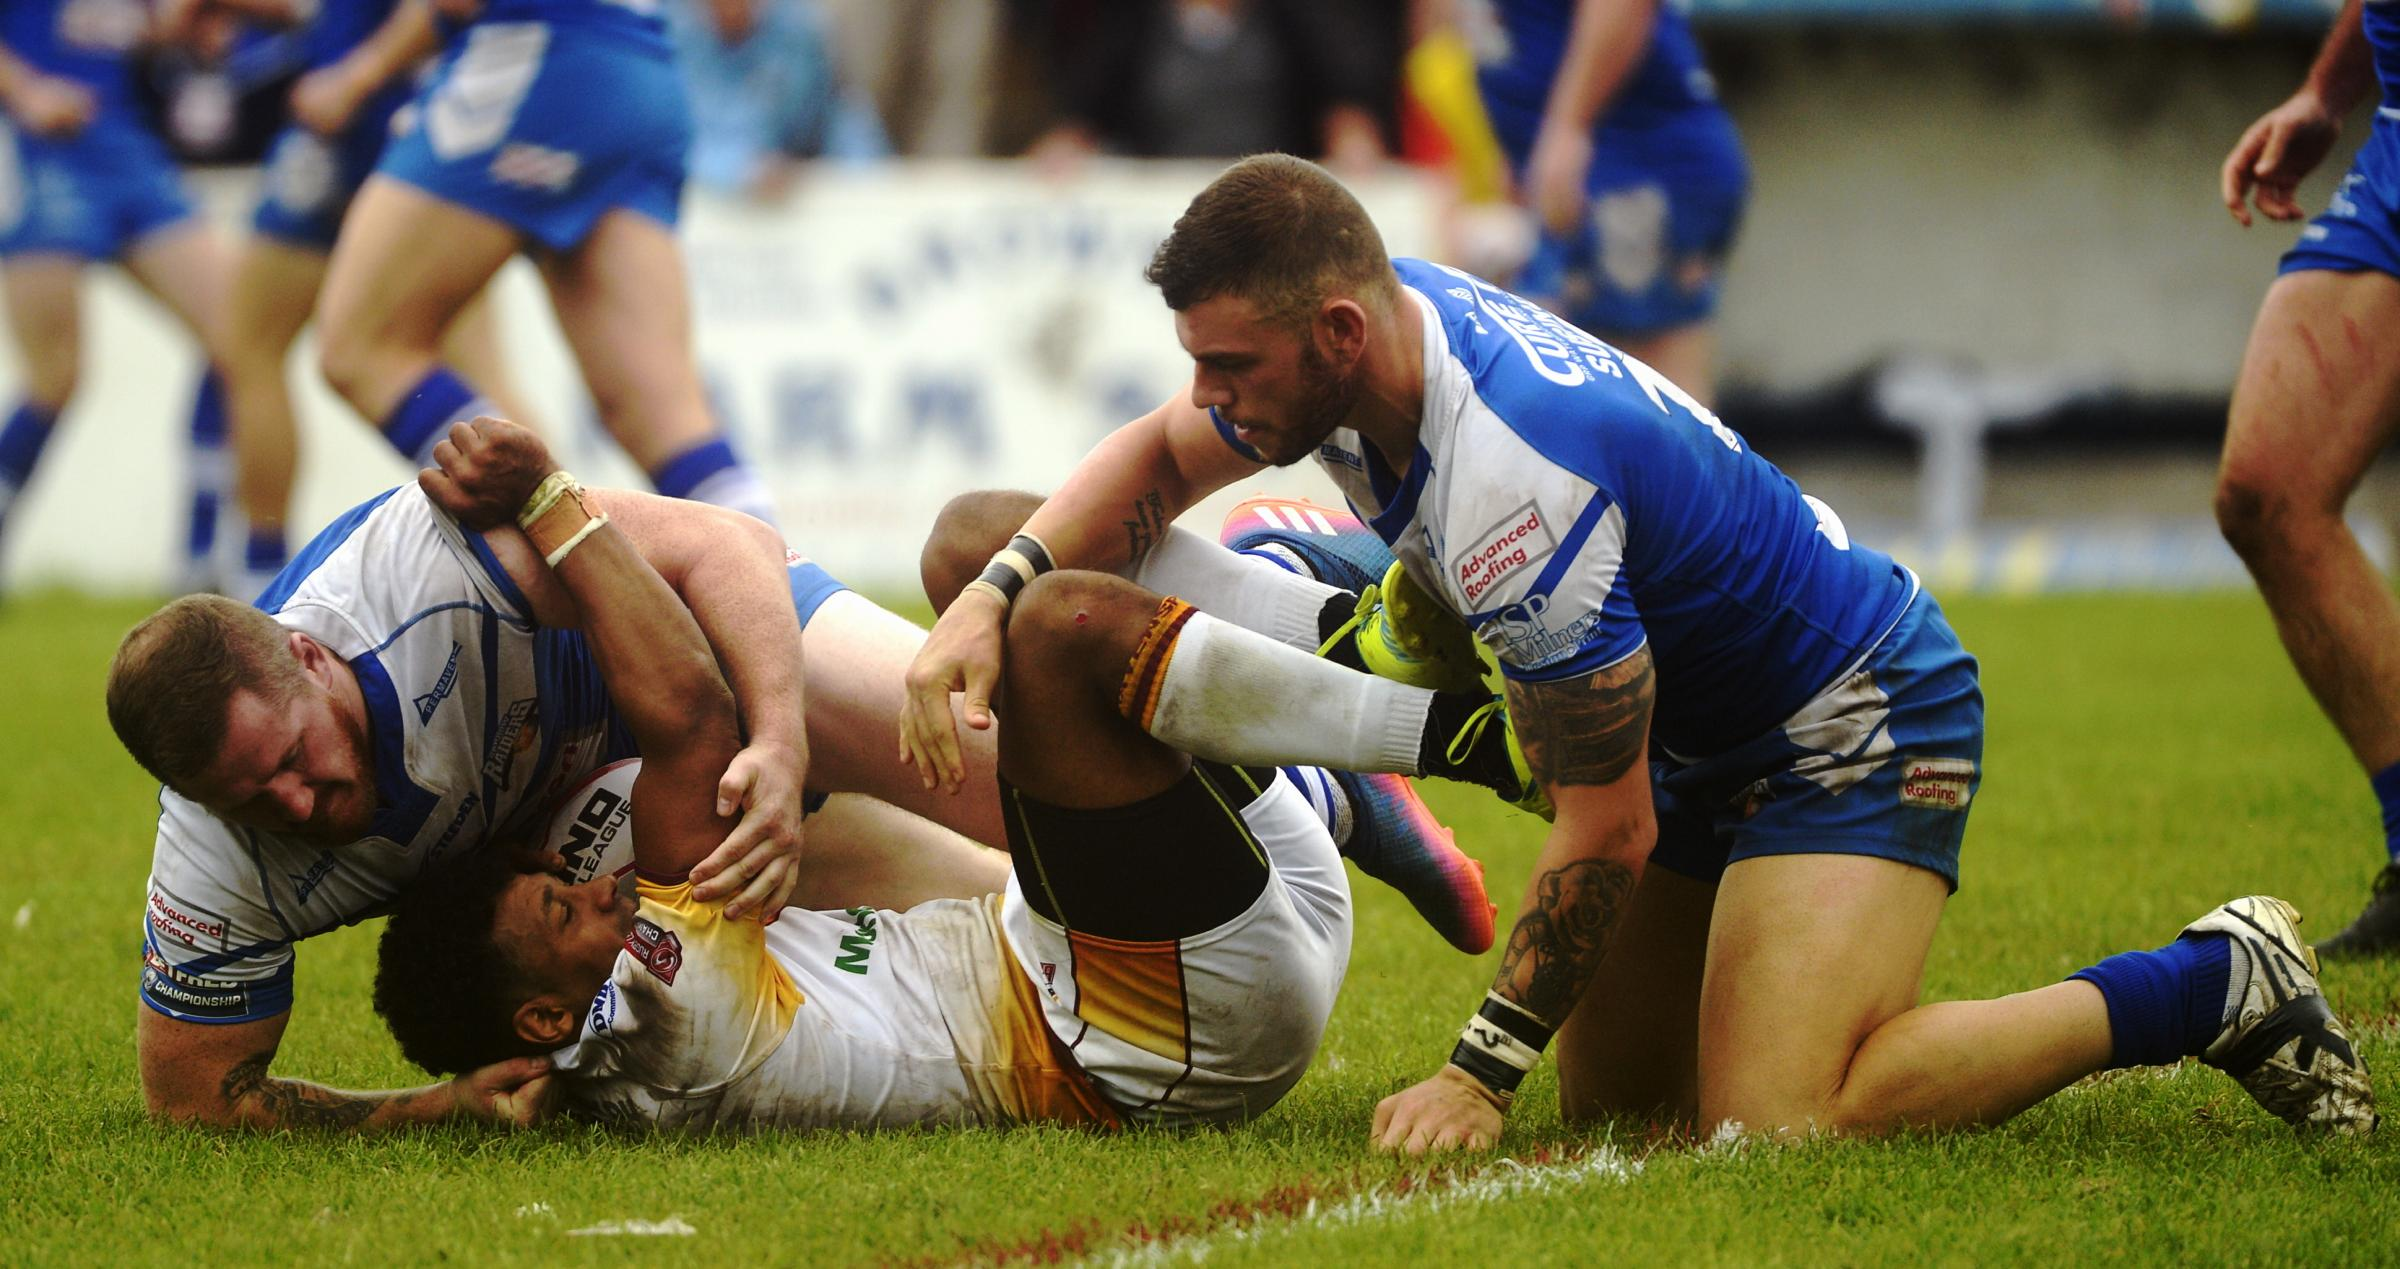 Tough: The Betfred Championship has been a harsh place at times for Barrow Raiders following promotion 		Picture: Jon Granger